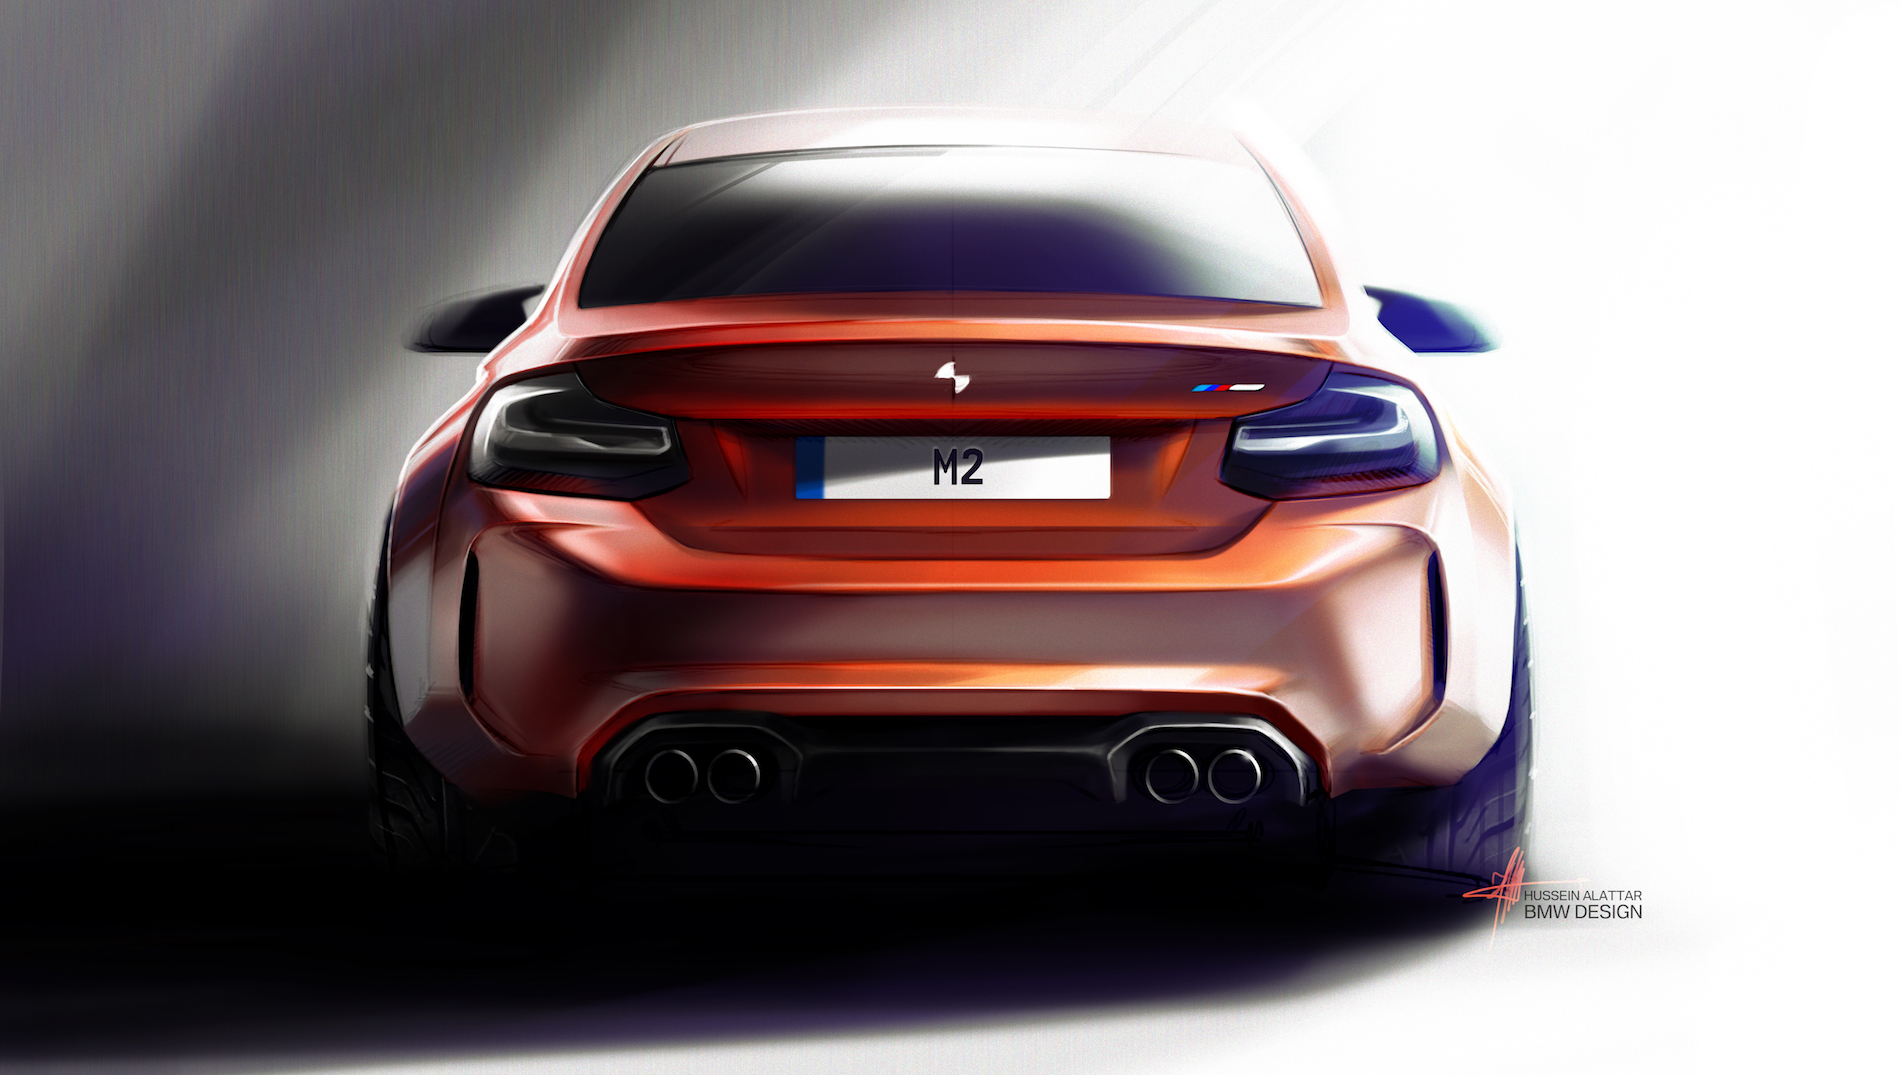 bmw m2 coupe f87 wallpapers specifications info pictures videos. Black Bedroom Furniture Sets. Home Design Ideas